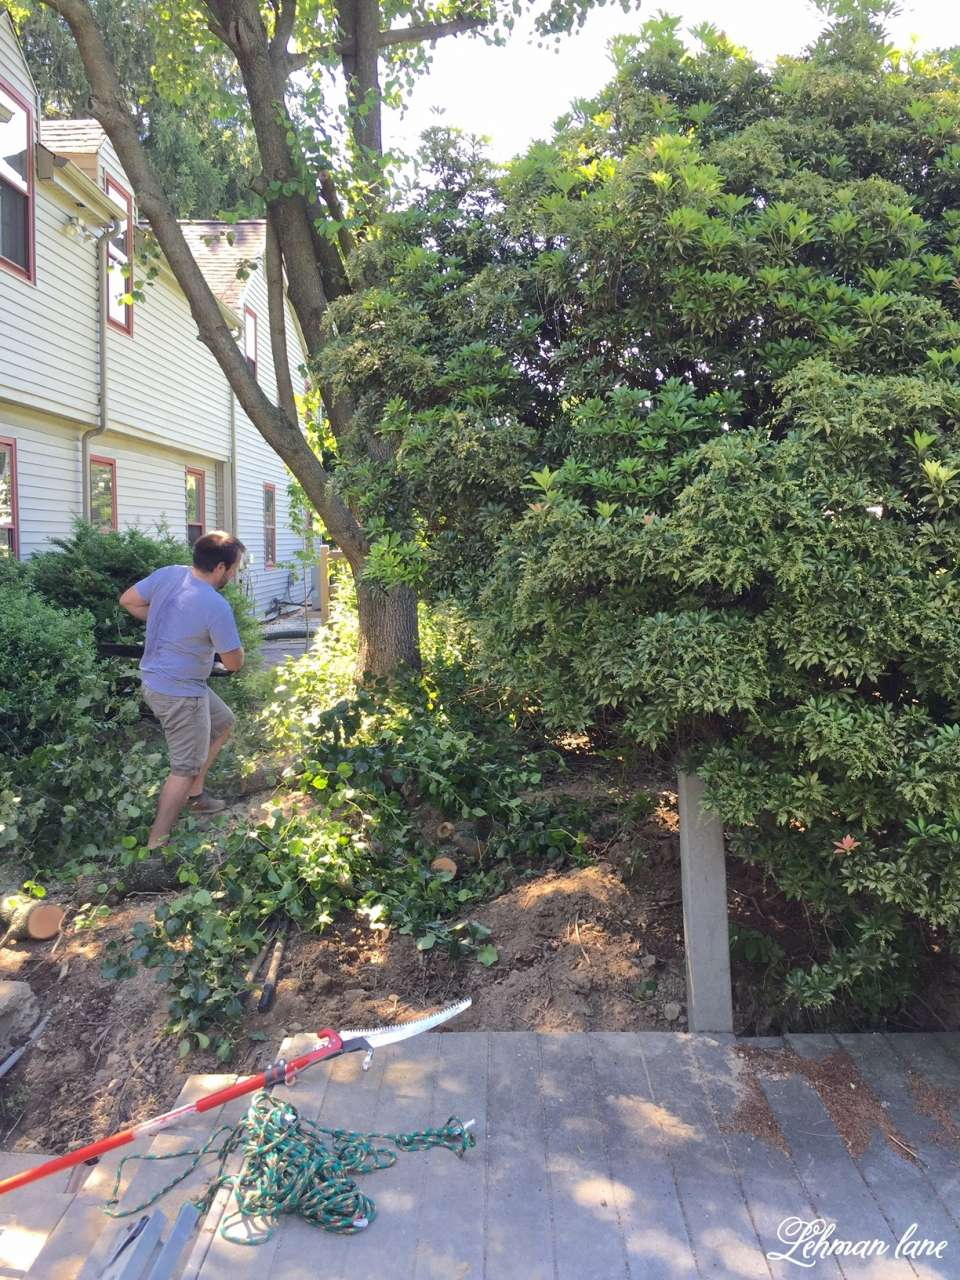 Taking down the shrubs along the back walkway